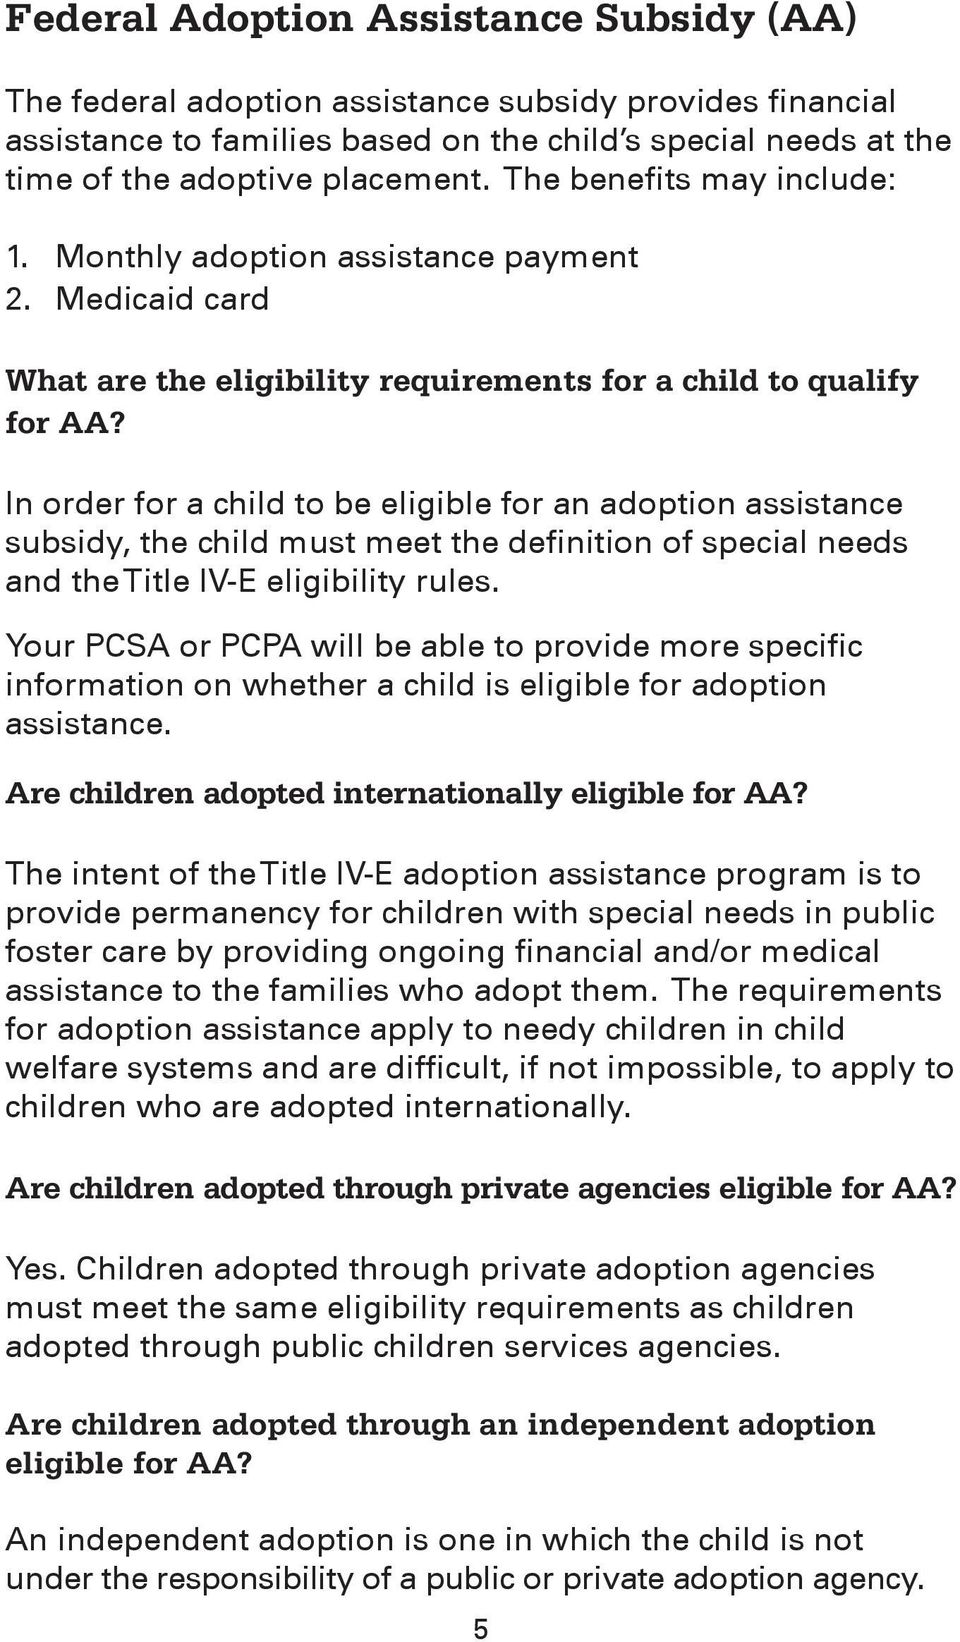 What Is the Adoption Assistance and Child Welfare Act